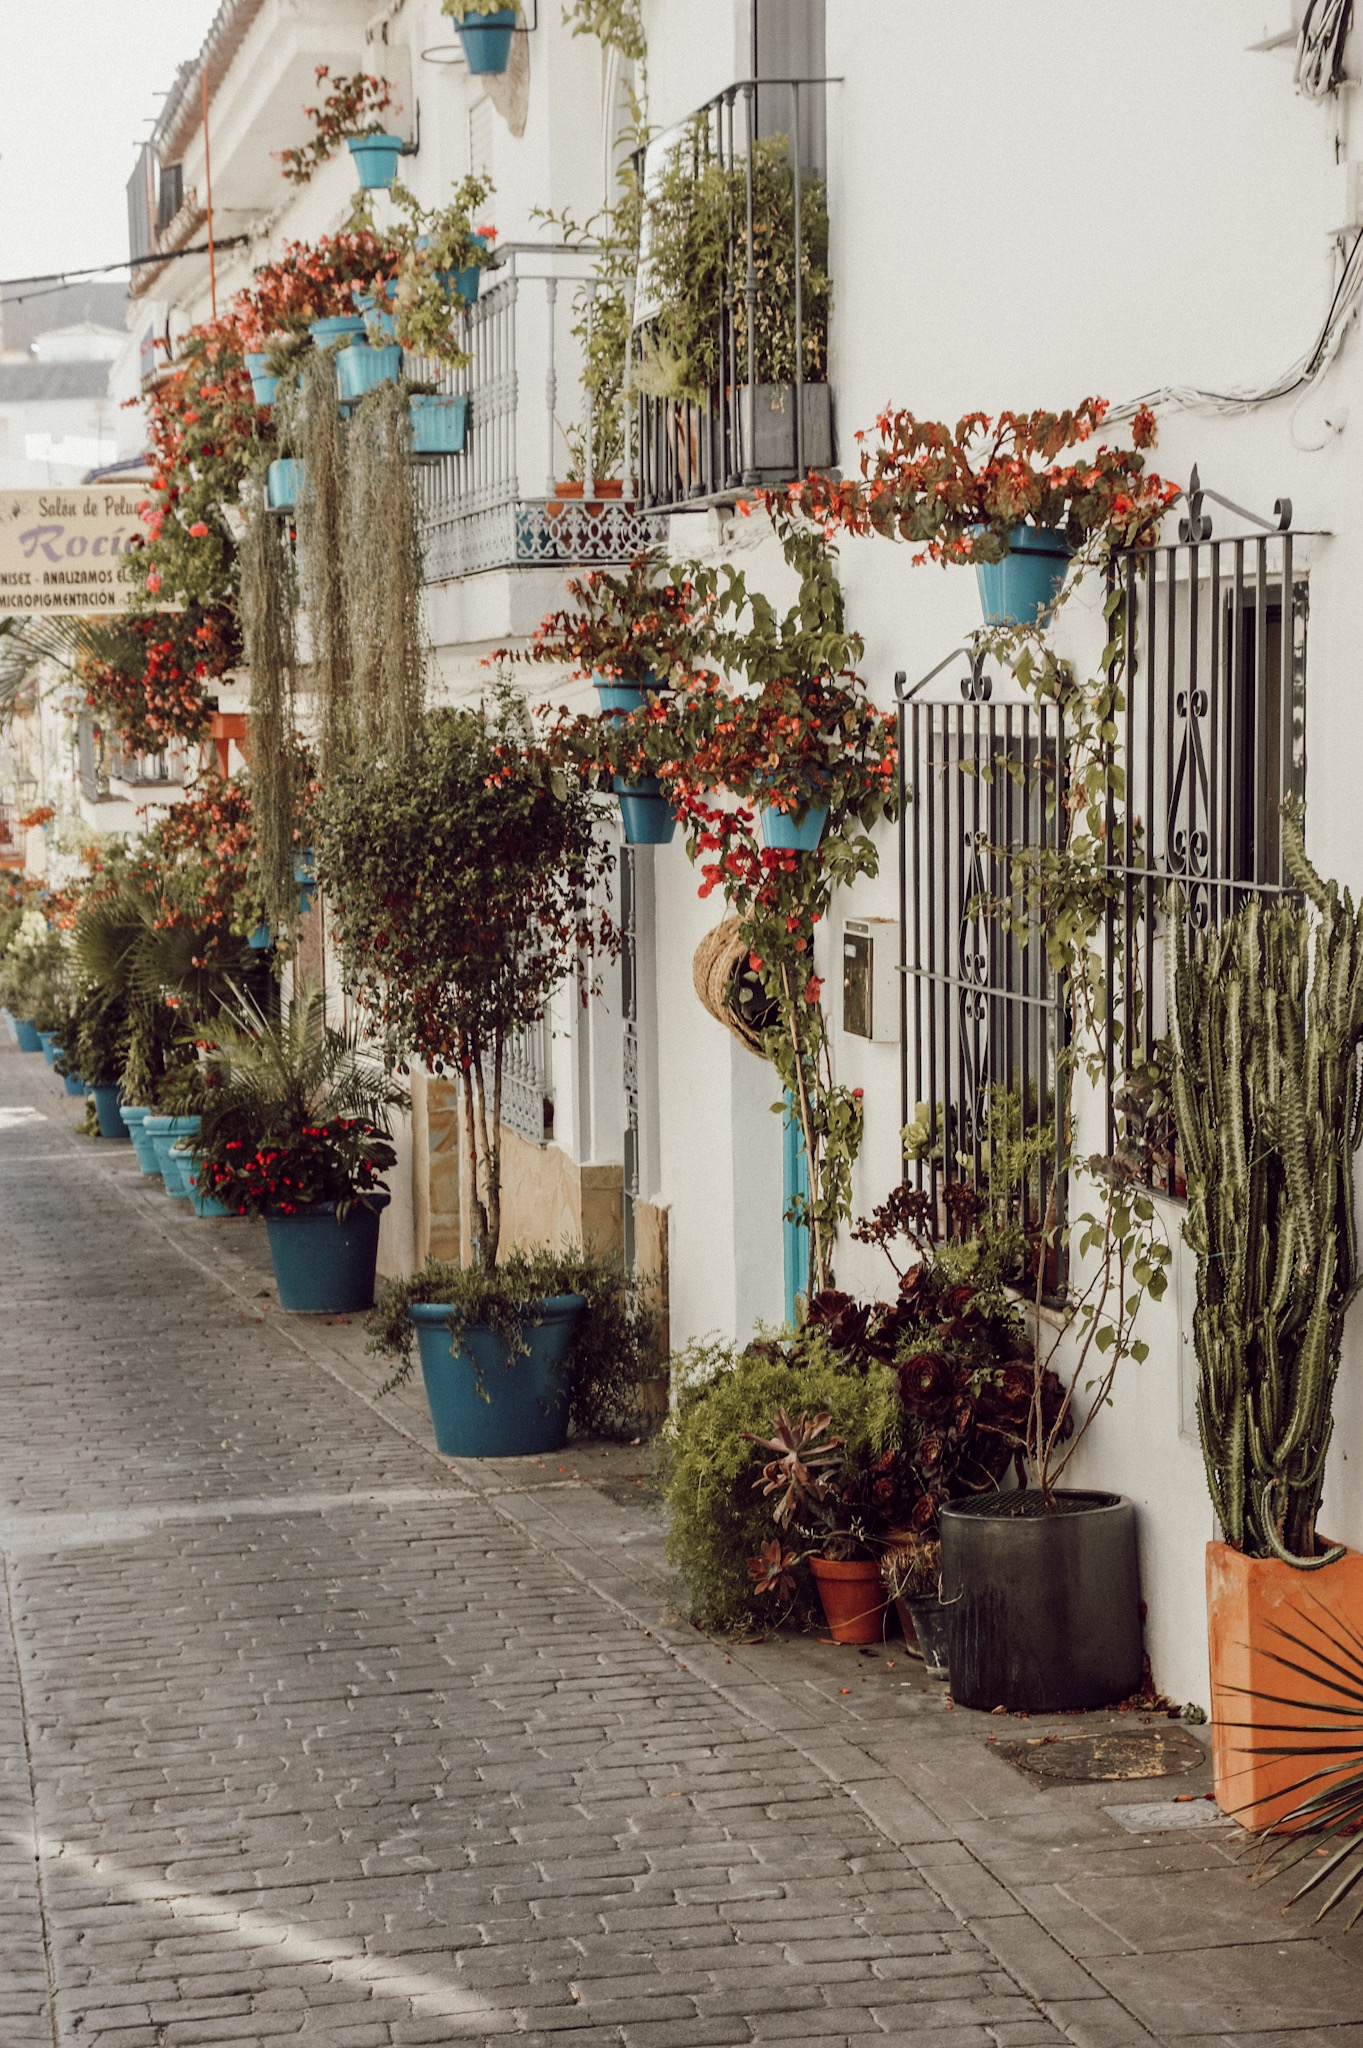 Estepona Andalusien